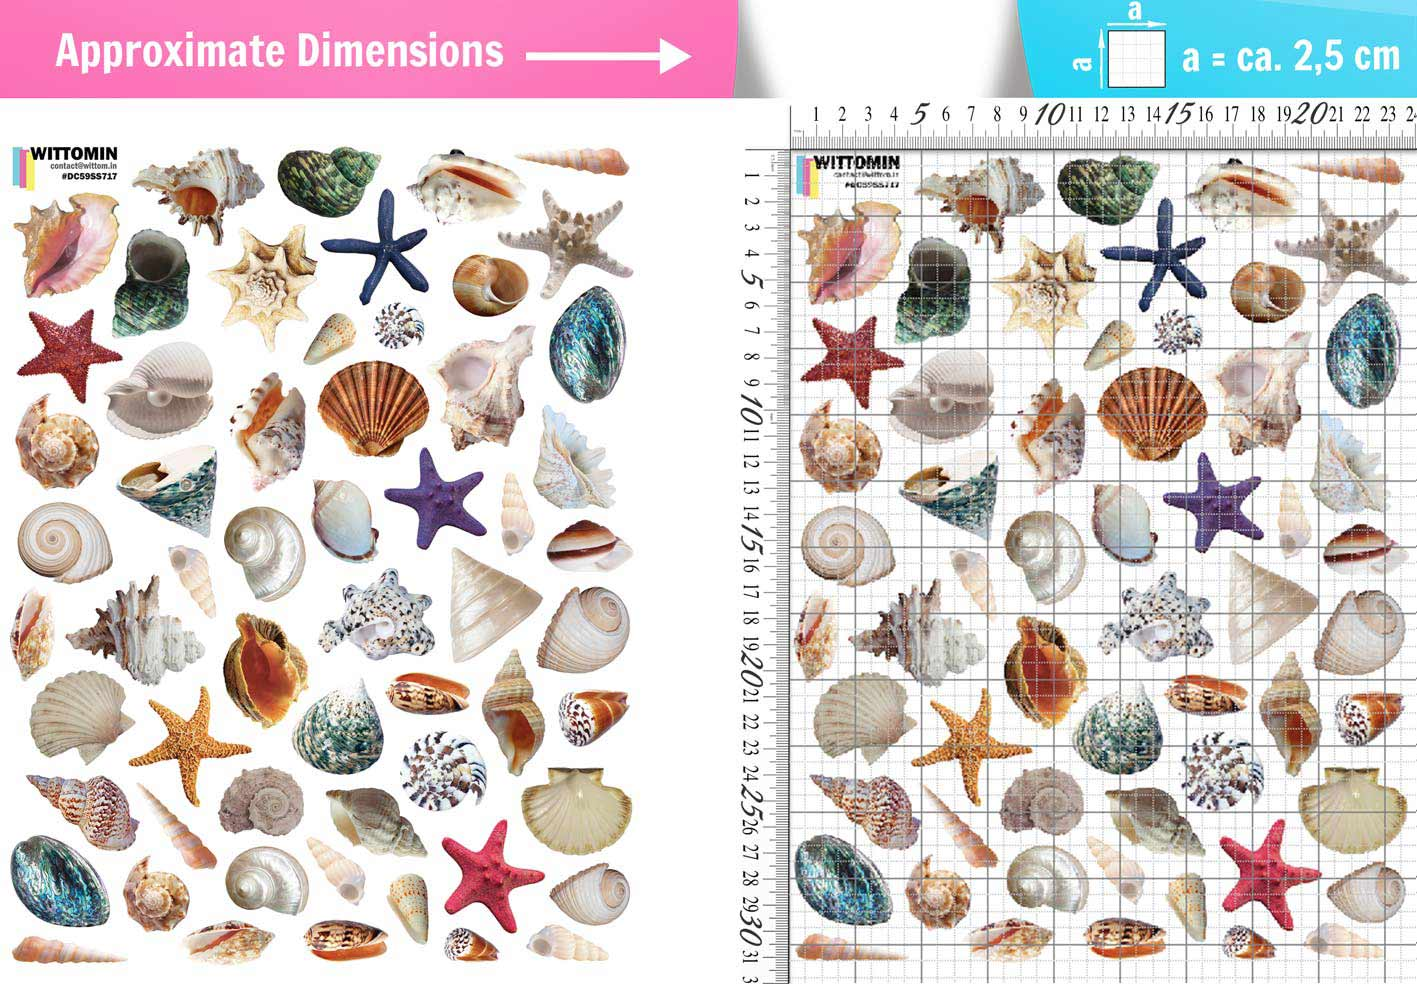 Small shells and pearls sticker set from Wittomin